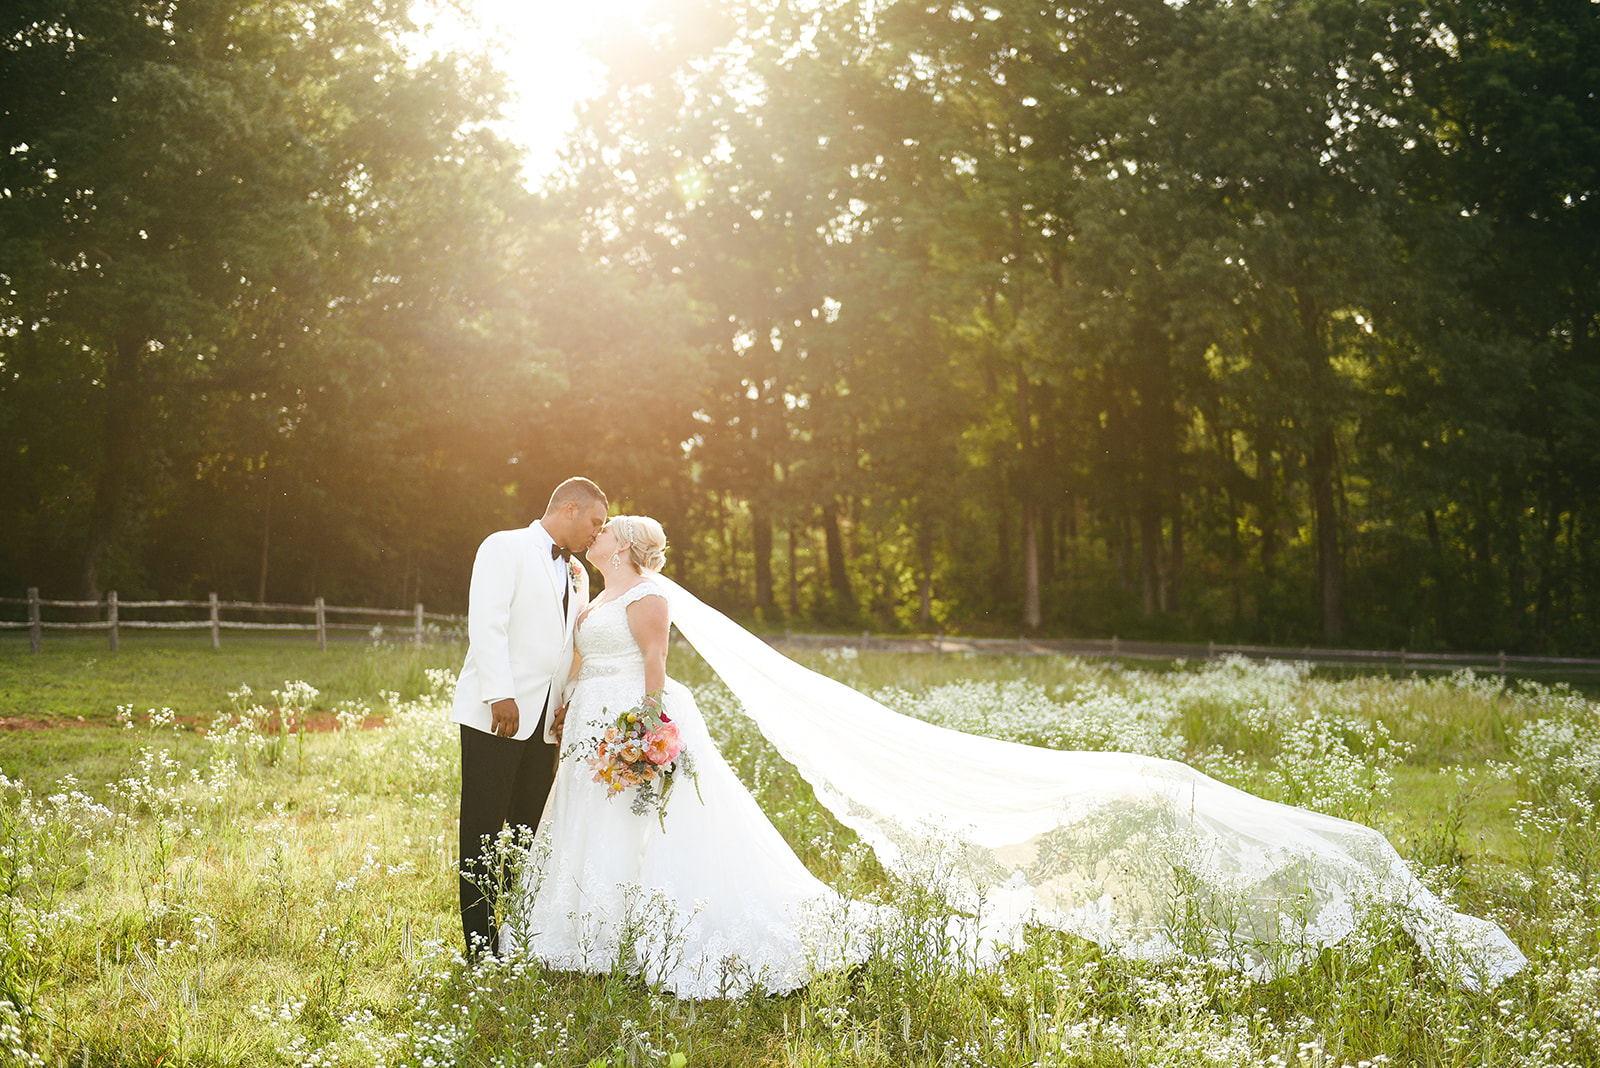 Golden hour wedding photography: Elegant Cason Cove Wedding featured on Nashville Bride Guide